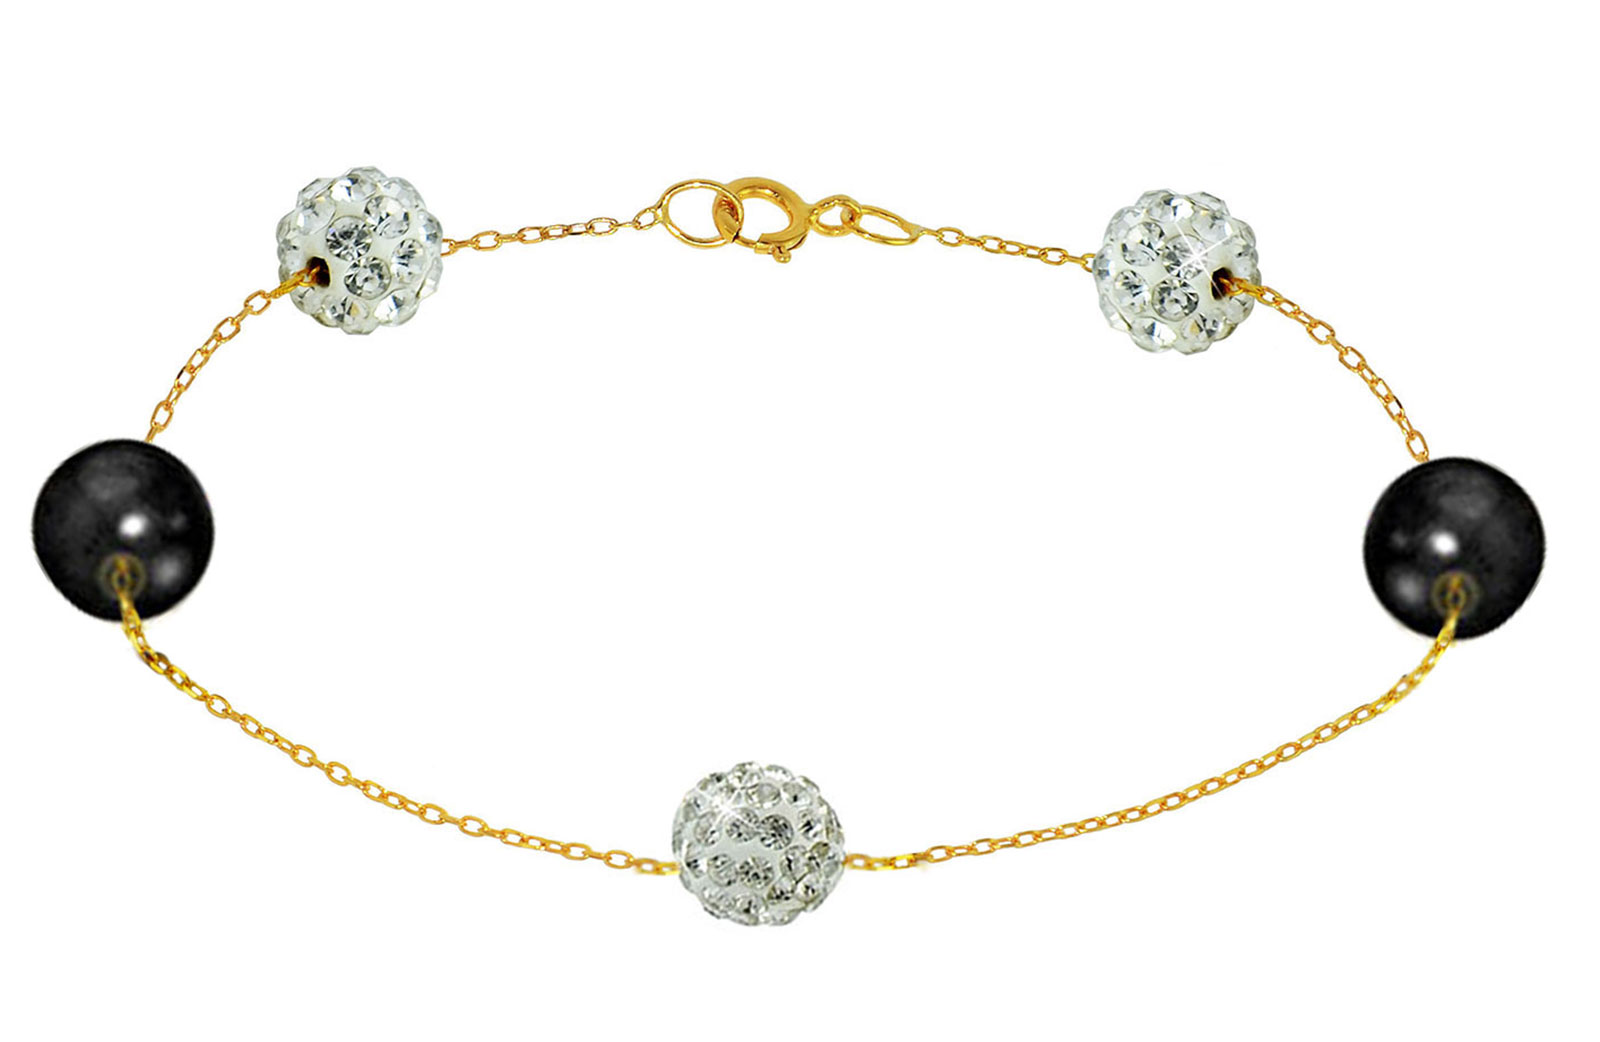 Vera Perla 18K Solid Gold Gradual Built-in 5-6mm Crystal Ball and Black Pearls Bracelet